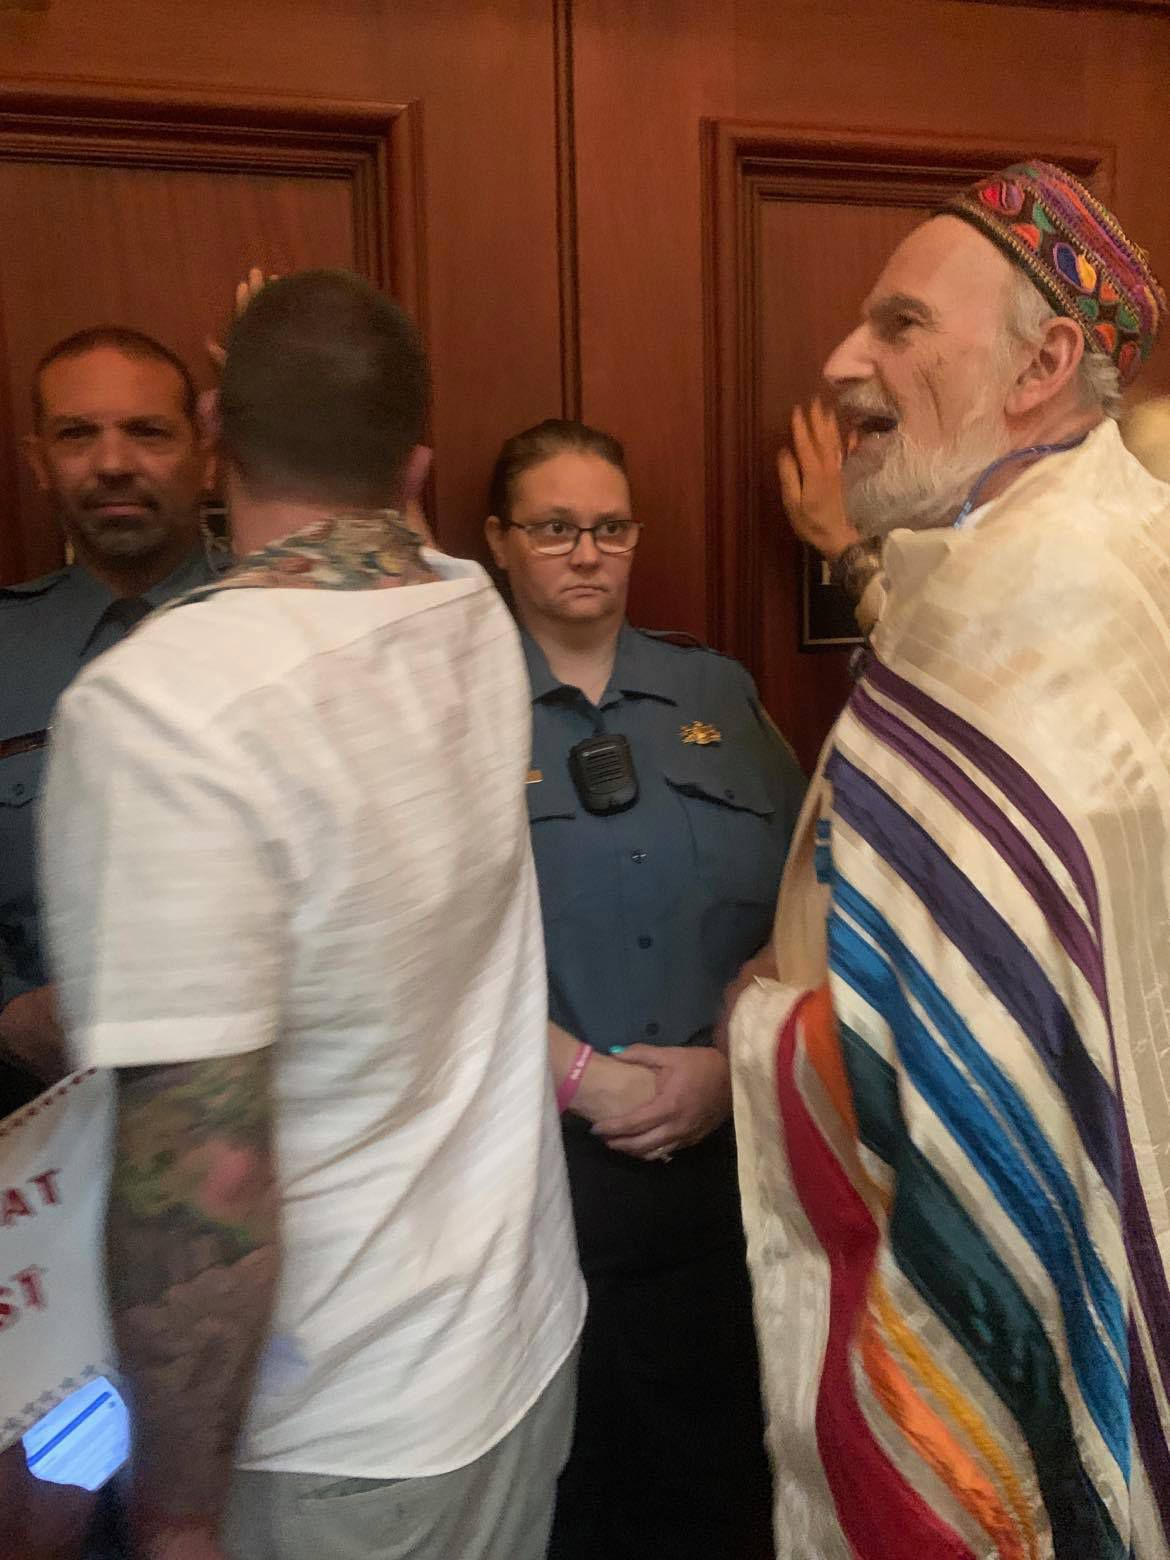 Rabbi Mordecai Liebling protests at the state capitol in Harrisburg